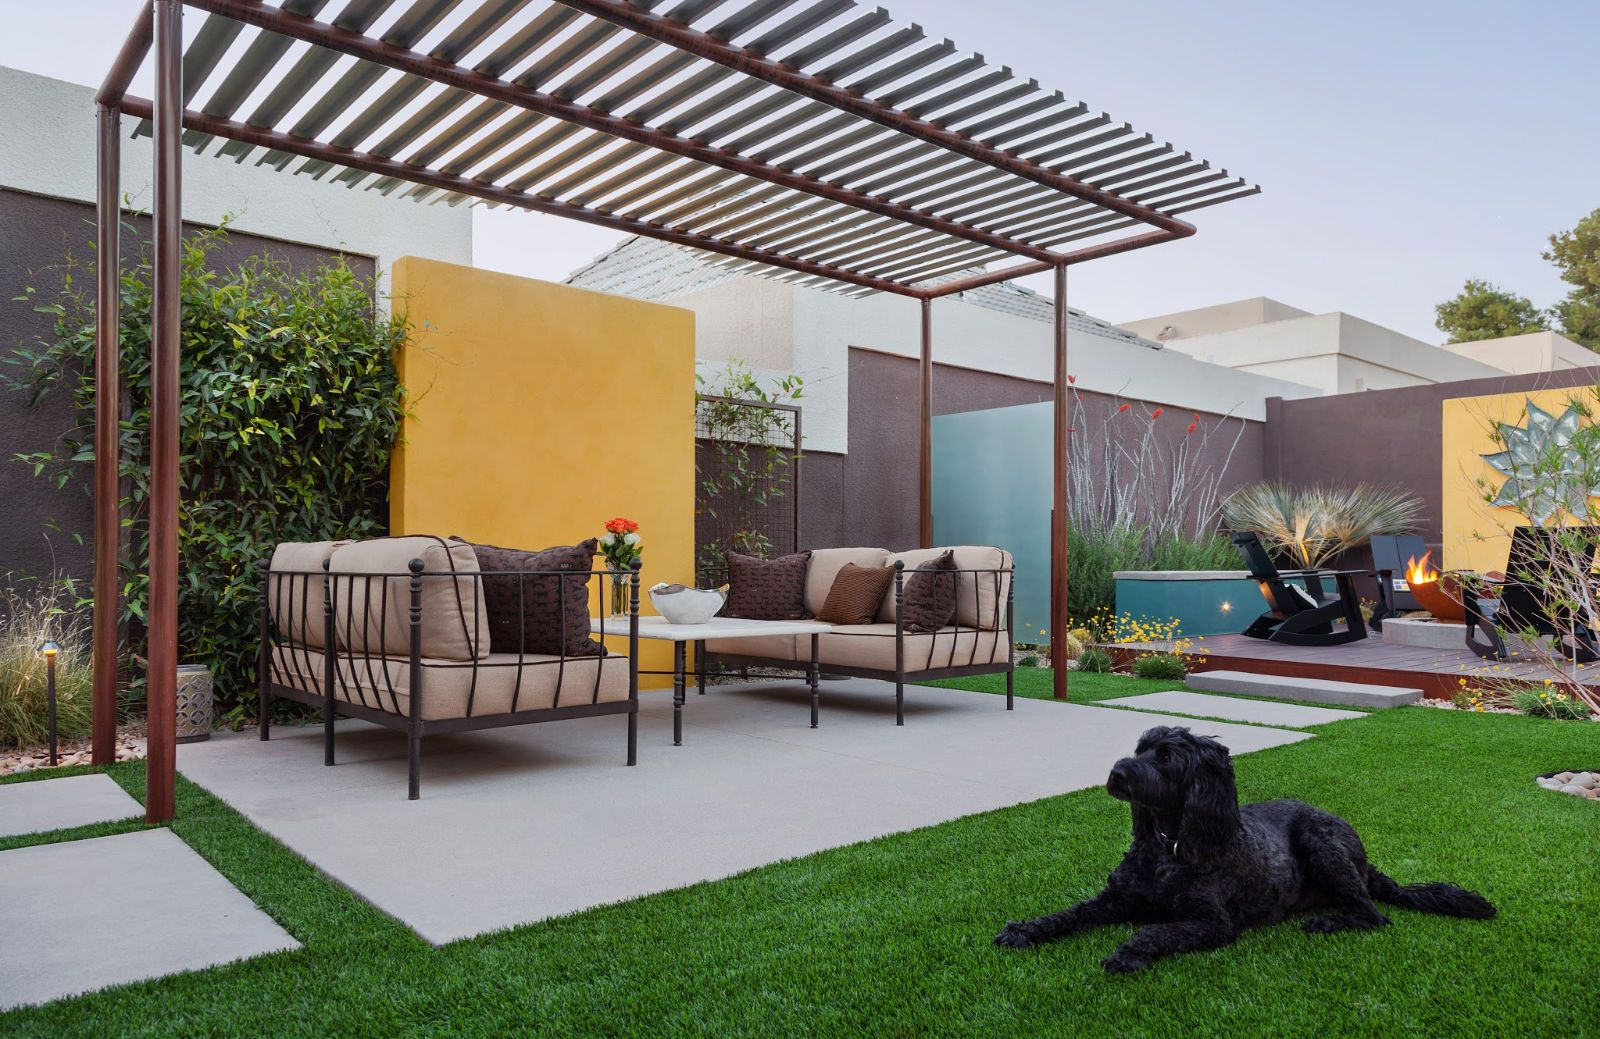 15 Beautiful Concrete Patio Ideas and Designs on backyard gravel ideas, sloped backyard ideas, backyard grass ideas, backyard furniture ideas, backyard pavers ideas, backyard stone ideas, backyard sand ideas, backyard landscaping ideas, backyard building ideas, backyard floor ideas, backyard rock ideas, backyard construction ideas, backyard slate ideas, backyard tile ideas, small backyard ideas, backyard brick ideas, backyard wood ideas, backyard paint ideas, backyard food ideas, backyard water ideas,